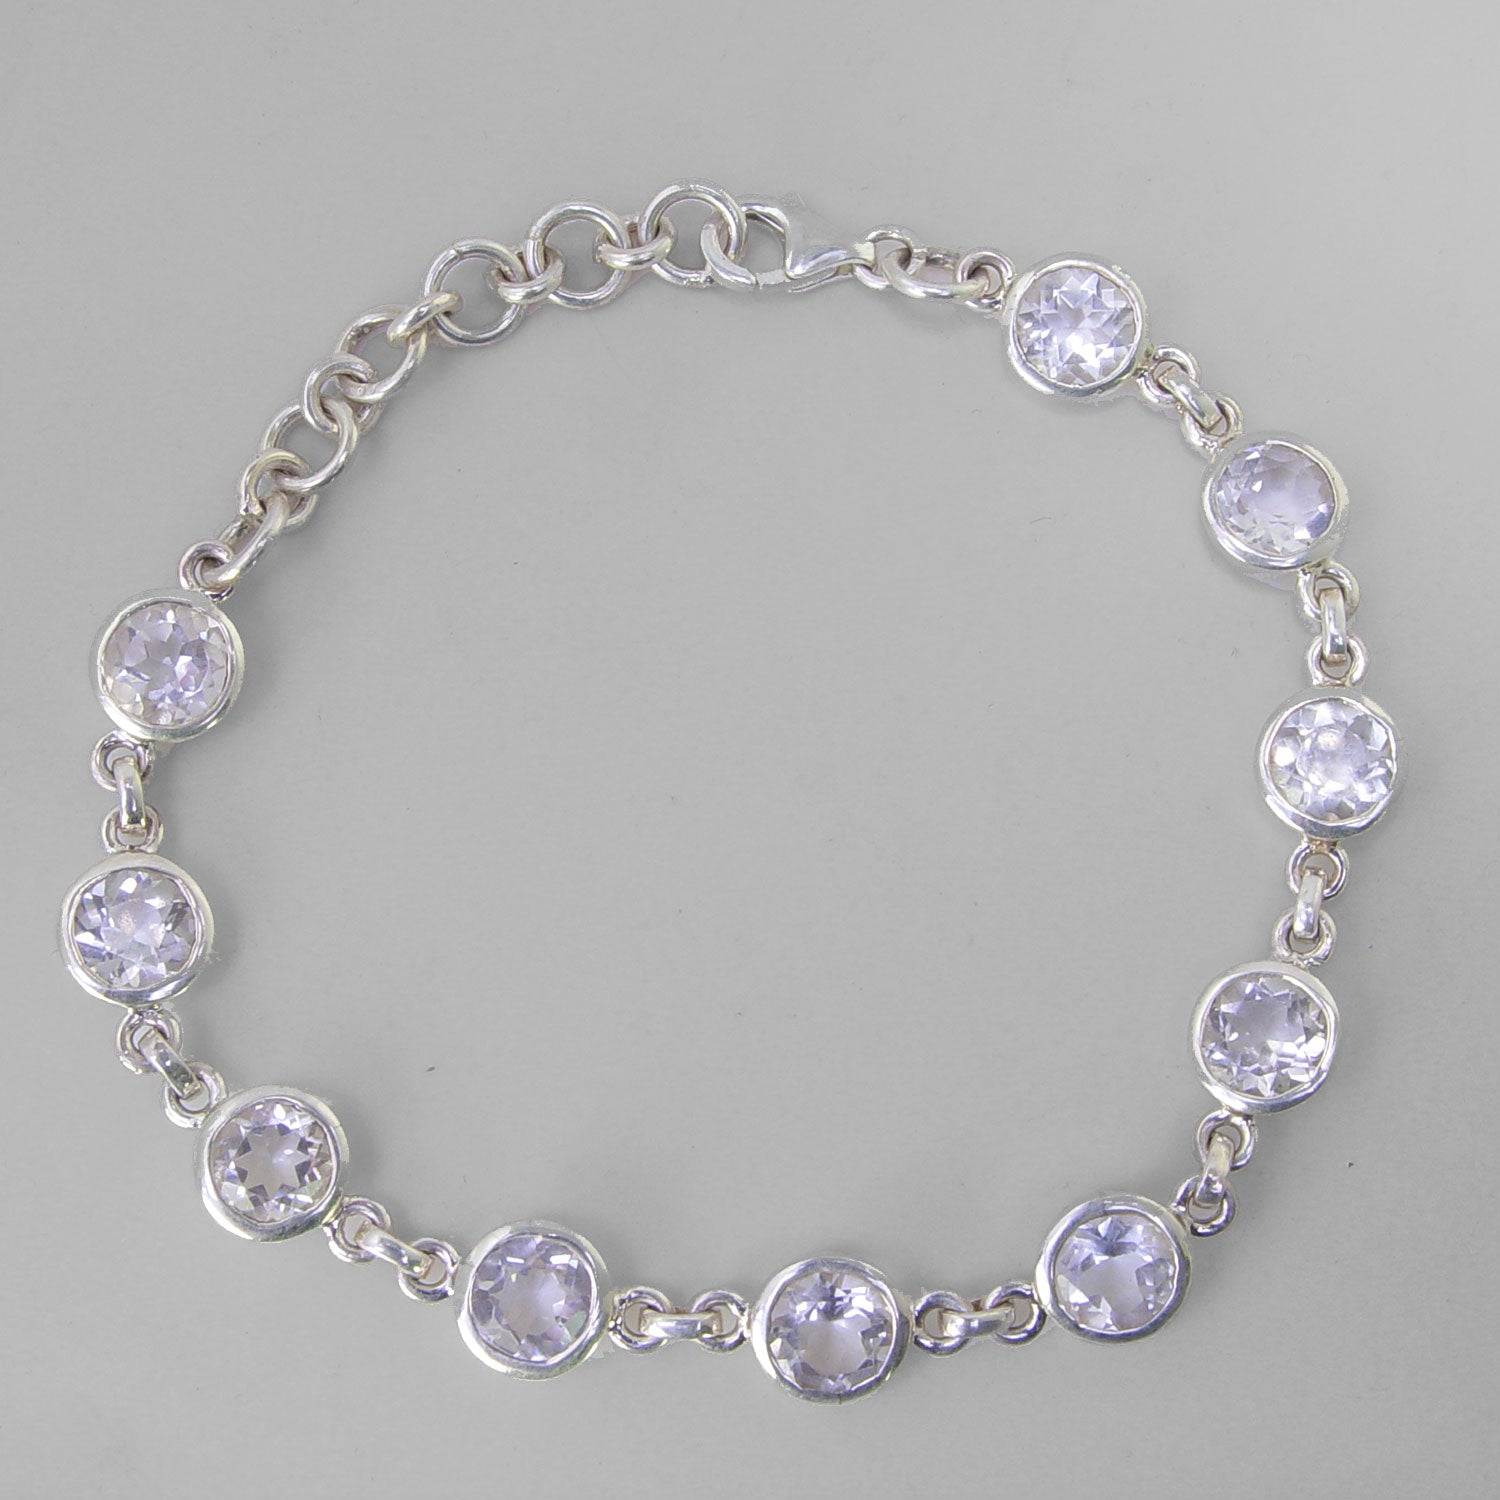 Crystal 10 Faceted Rounds Bezel Set Sterling Silver Link Bracelet - 9 CTW